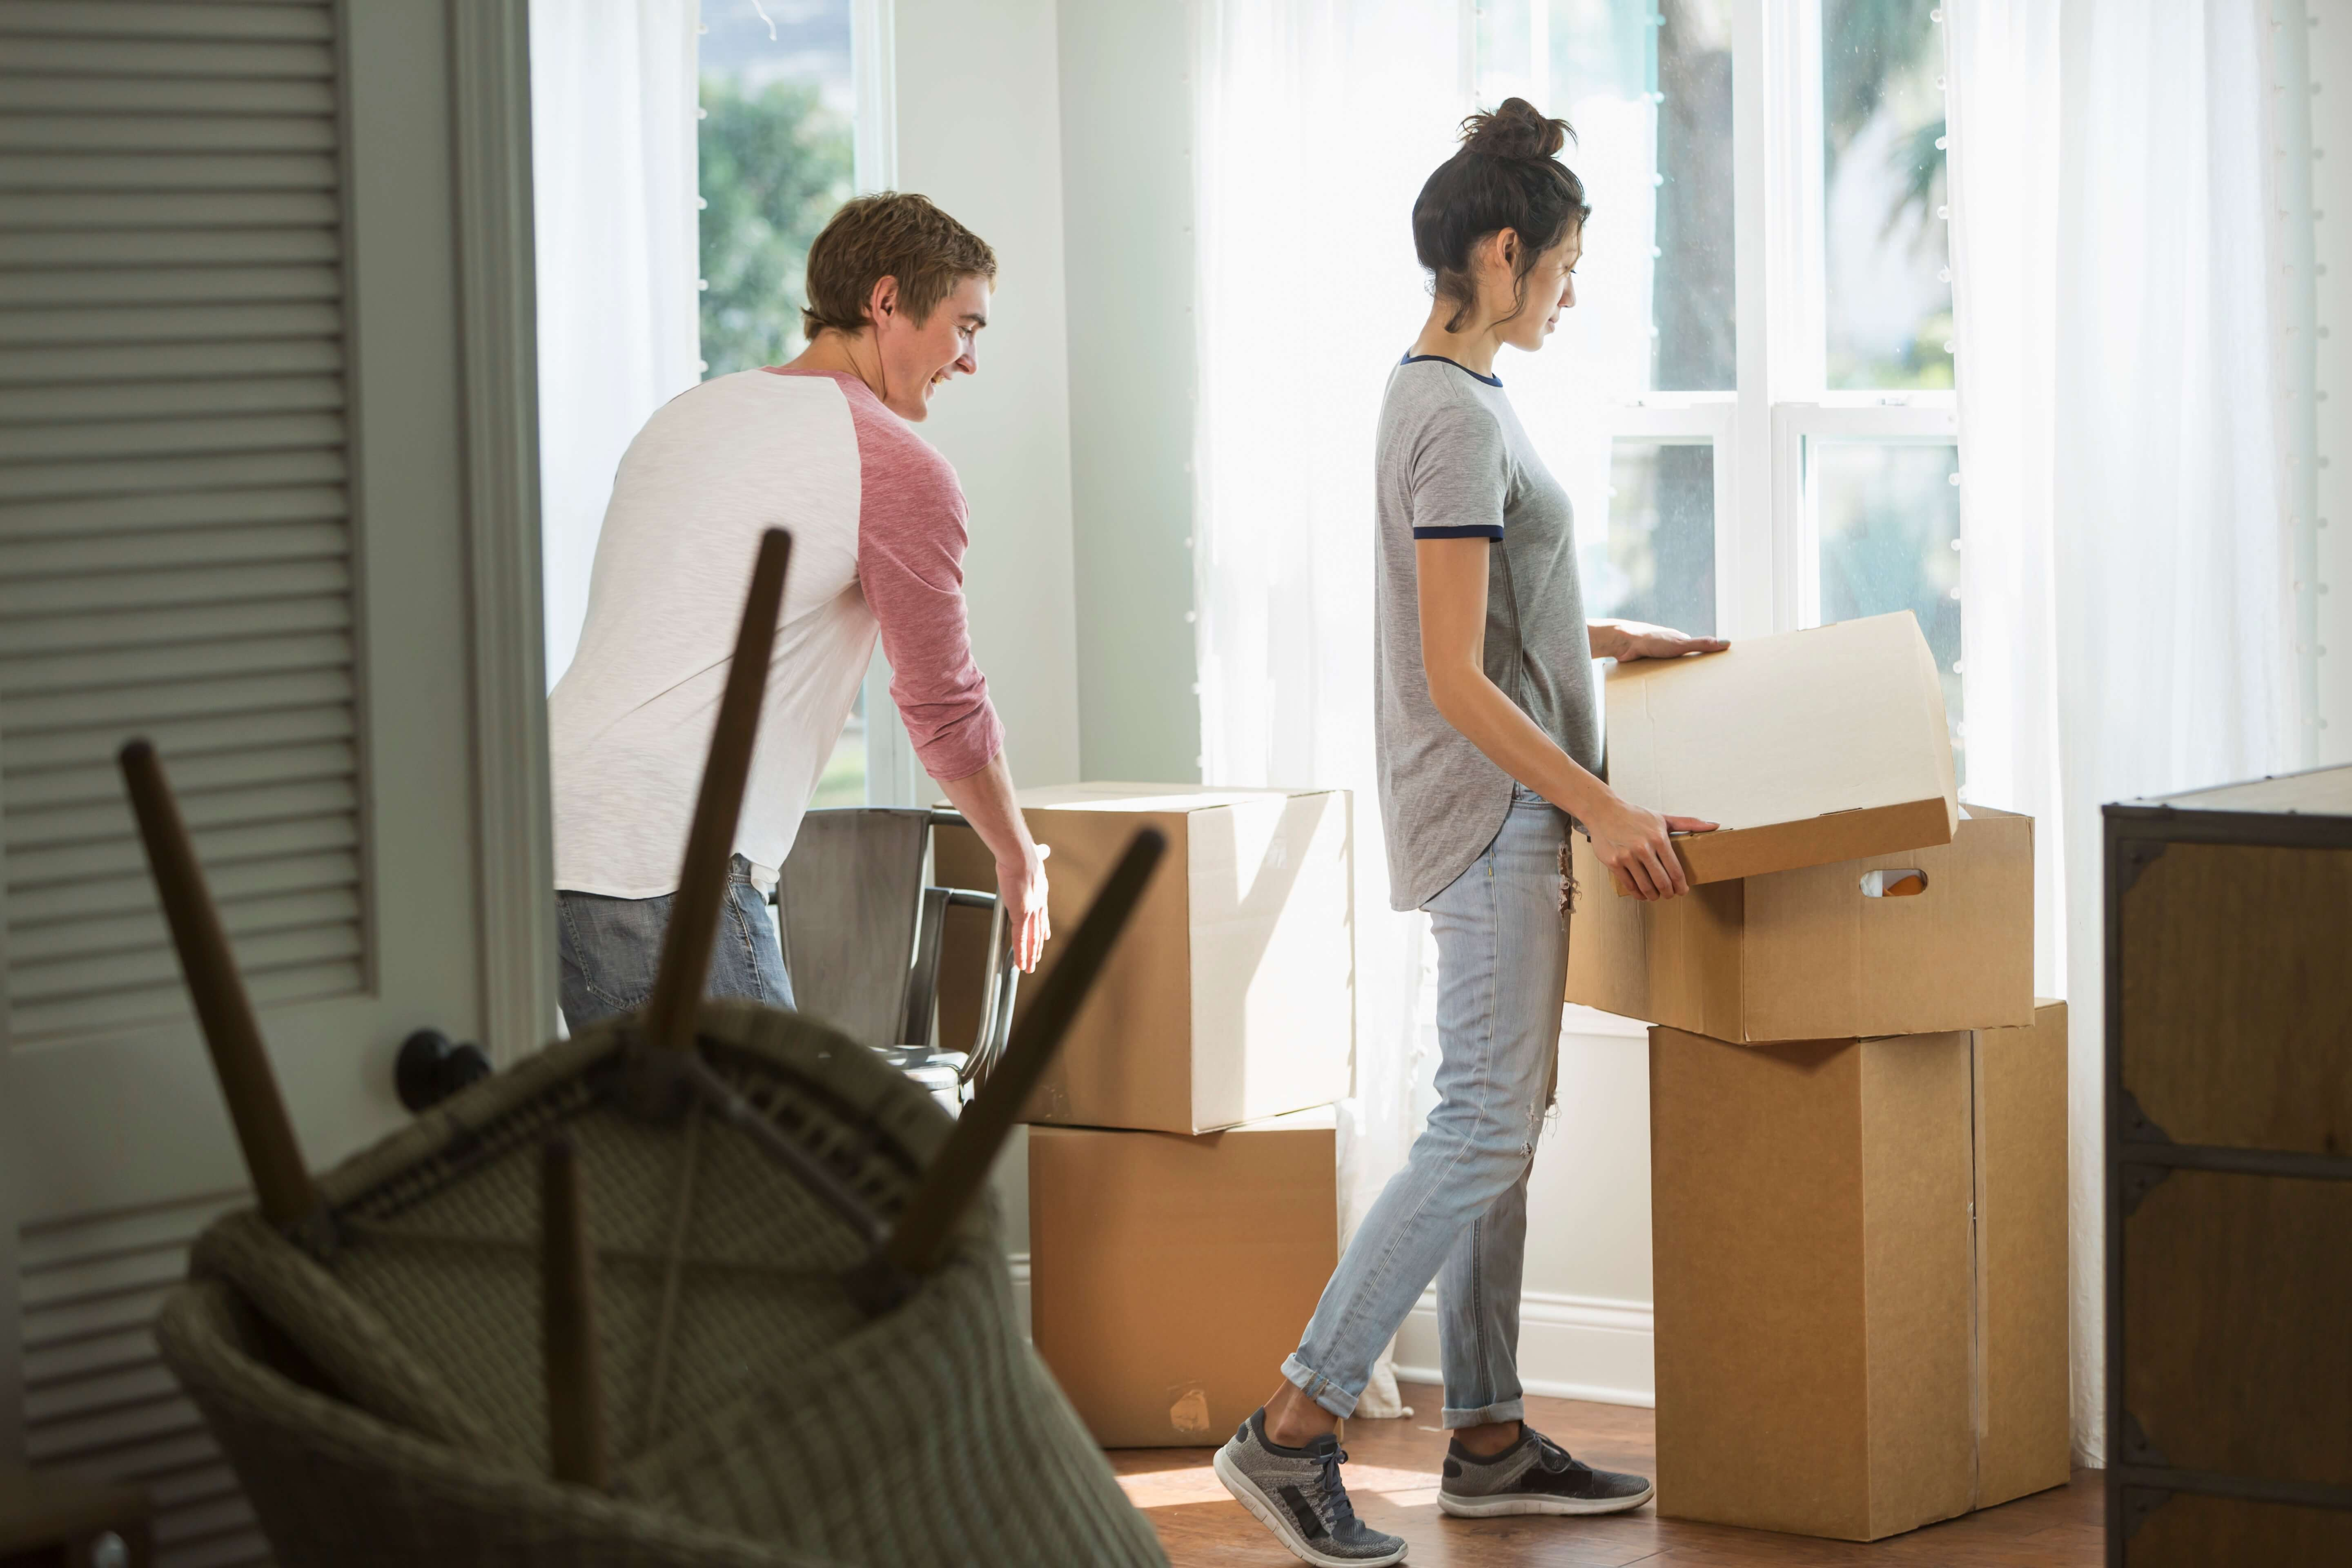 A young couple moving into their new home, carrying boxes.